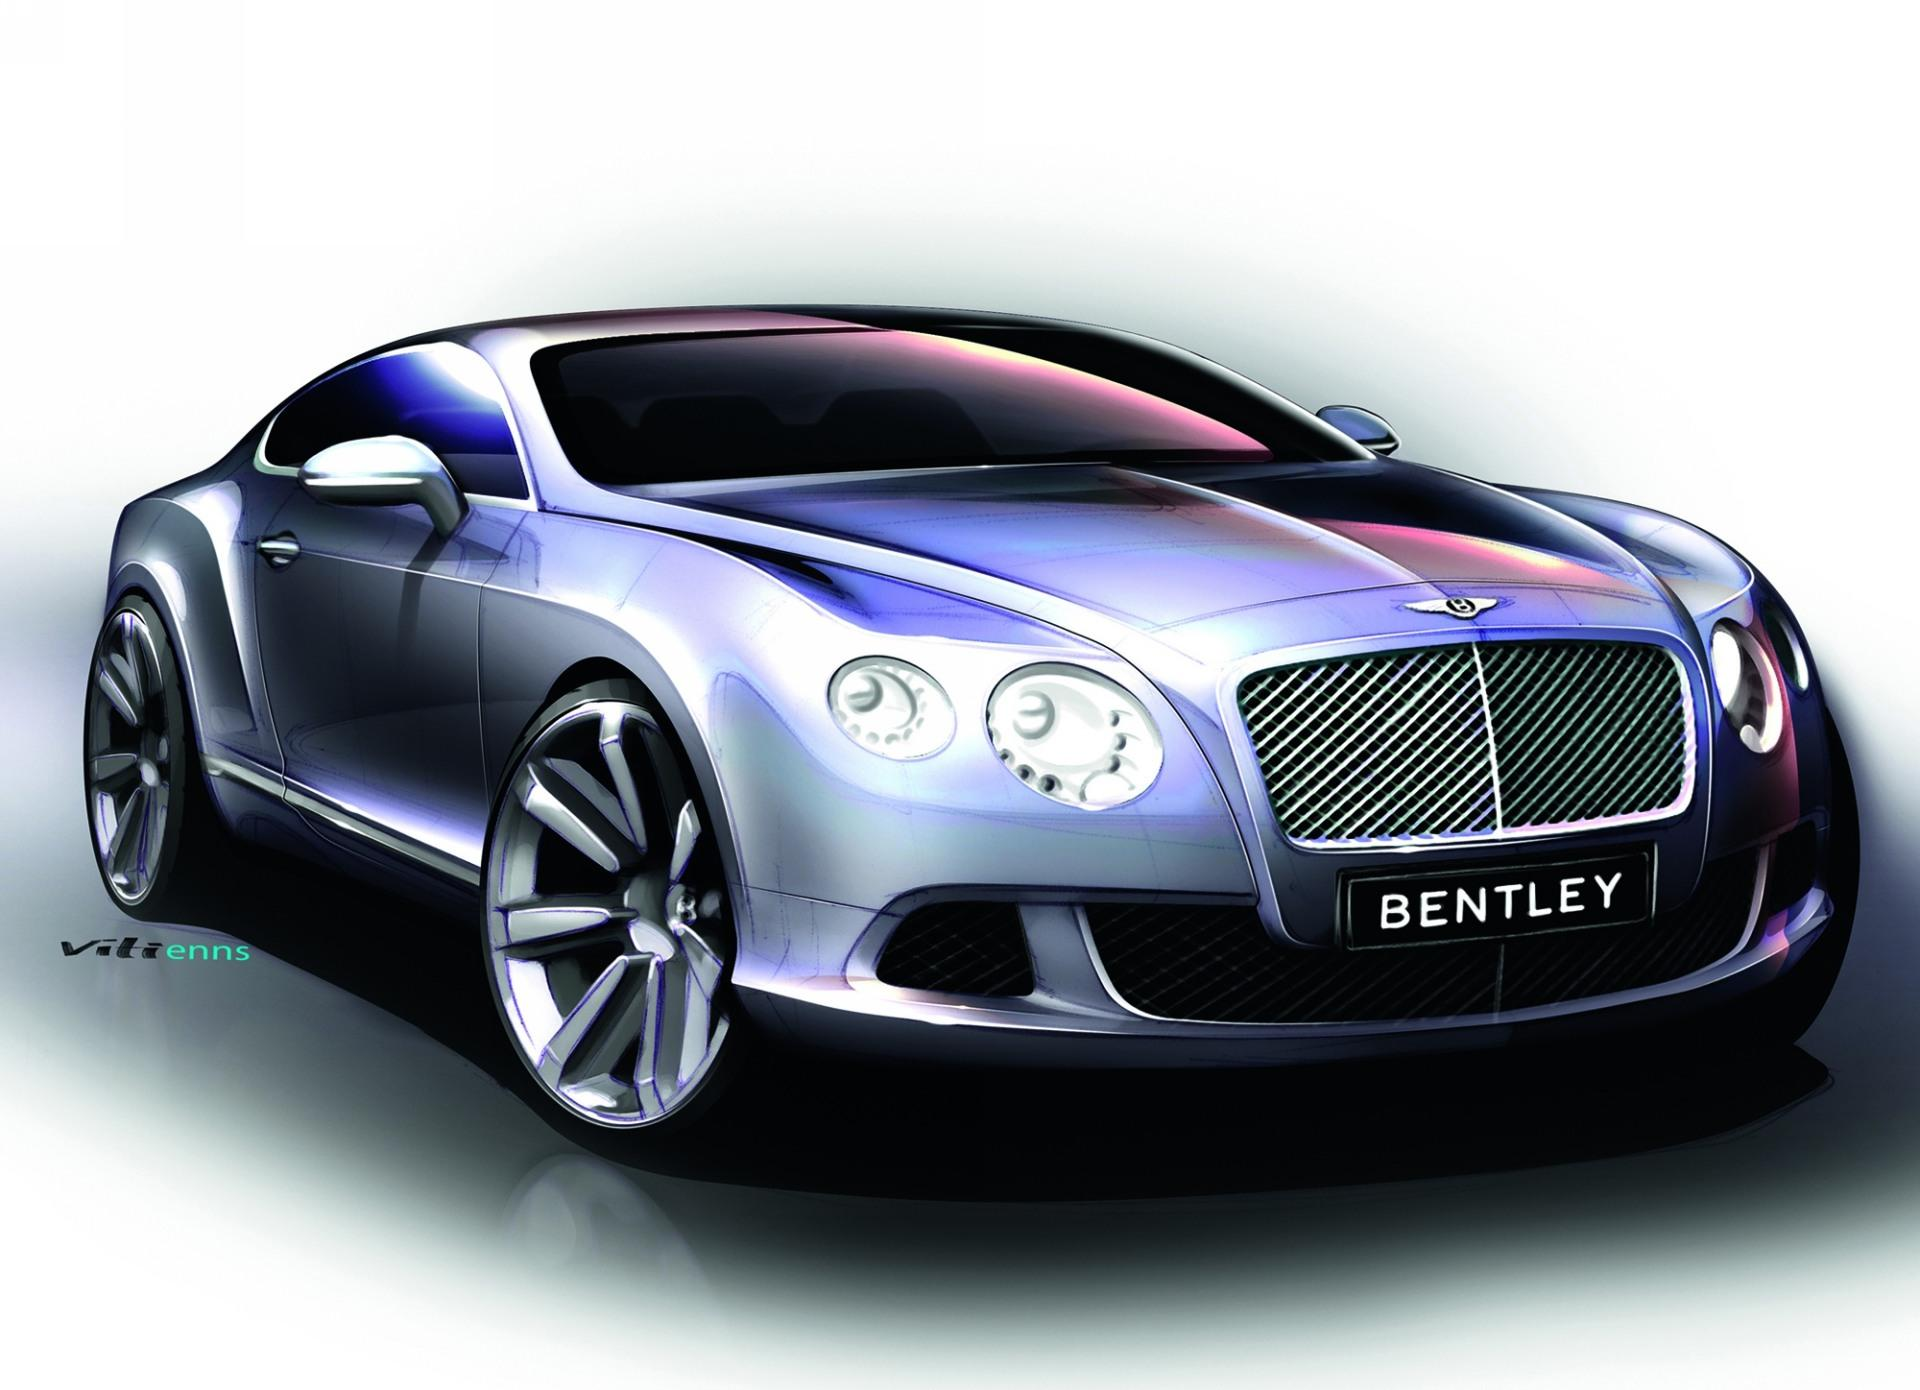 Bentley Continental GT 2012 Wallpaper For Computer